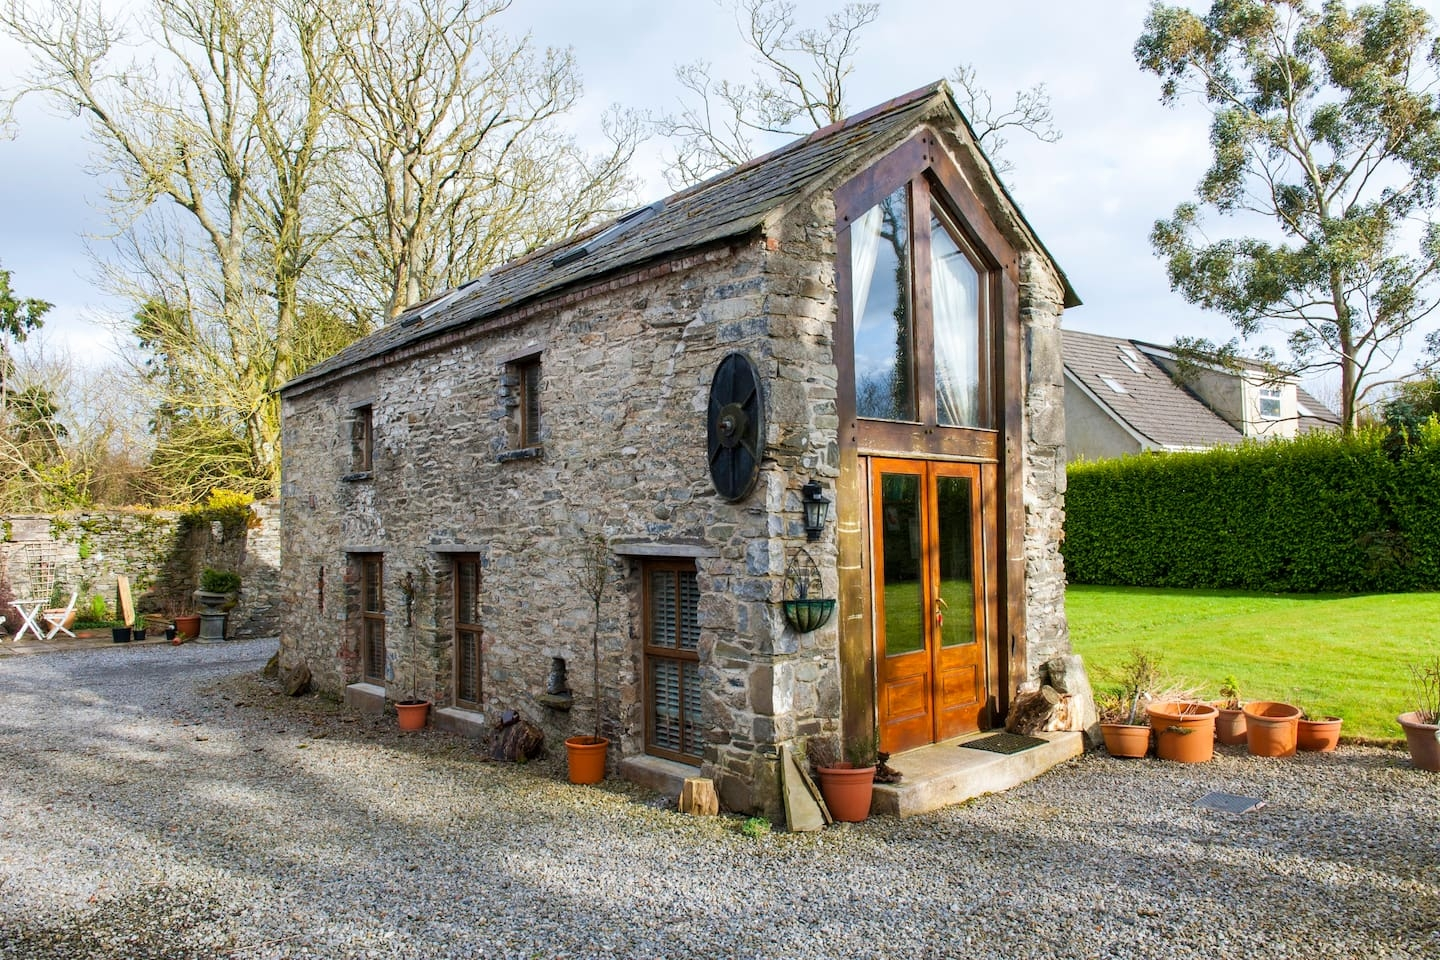 12-Airbnb-Architecture-with-the-13th-Century-Stone-Barn-Conversion-www-designstack-co